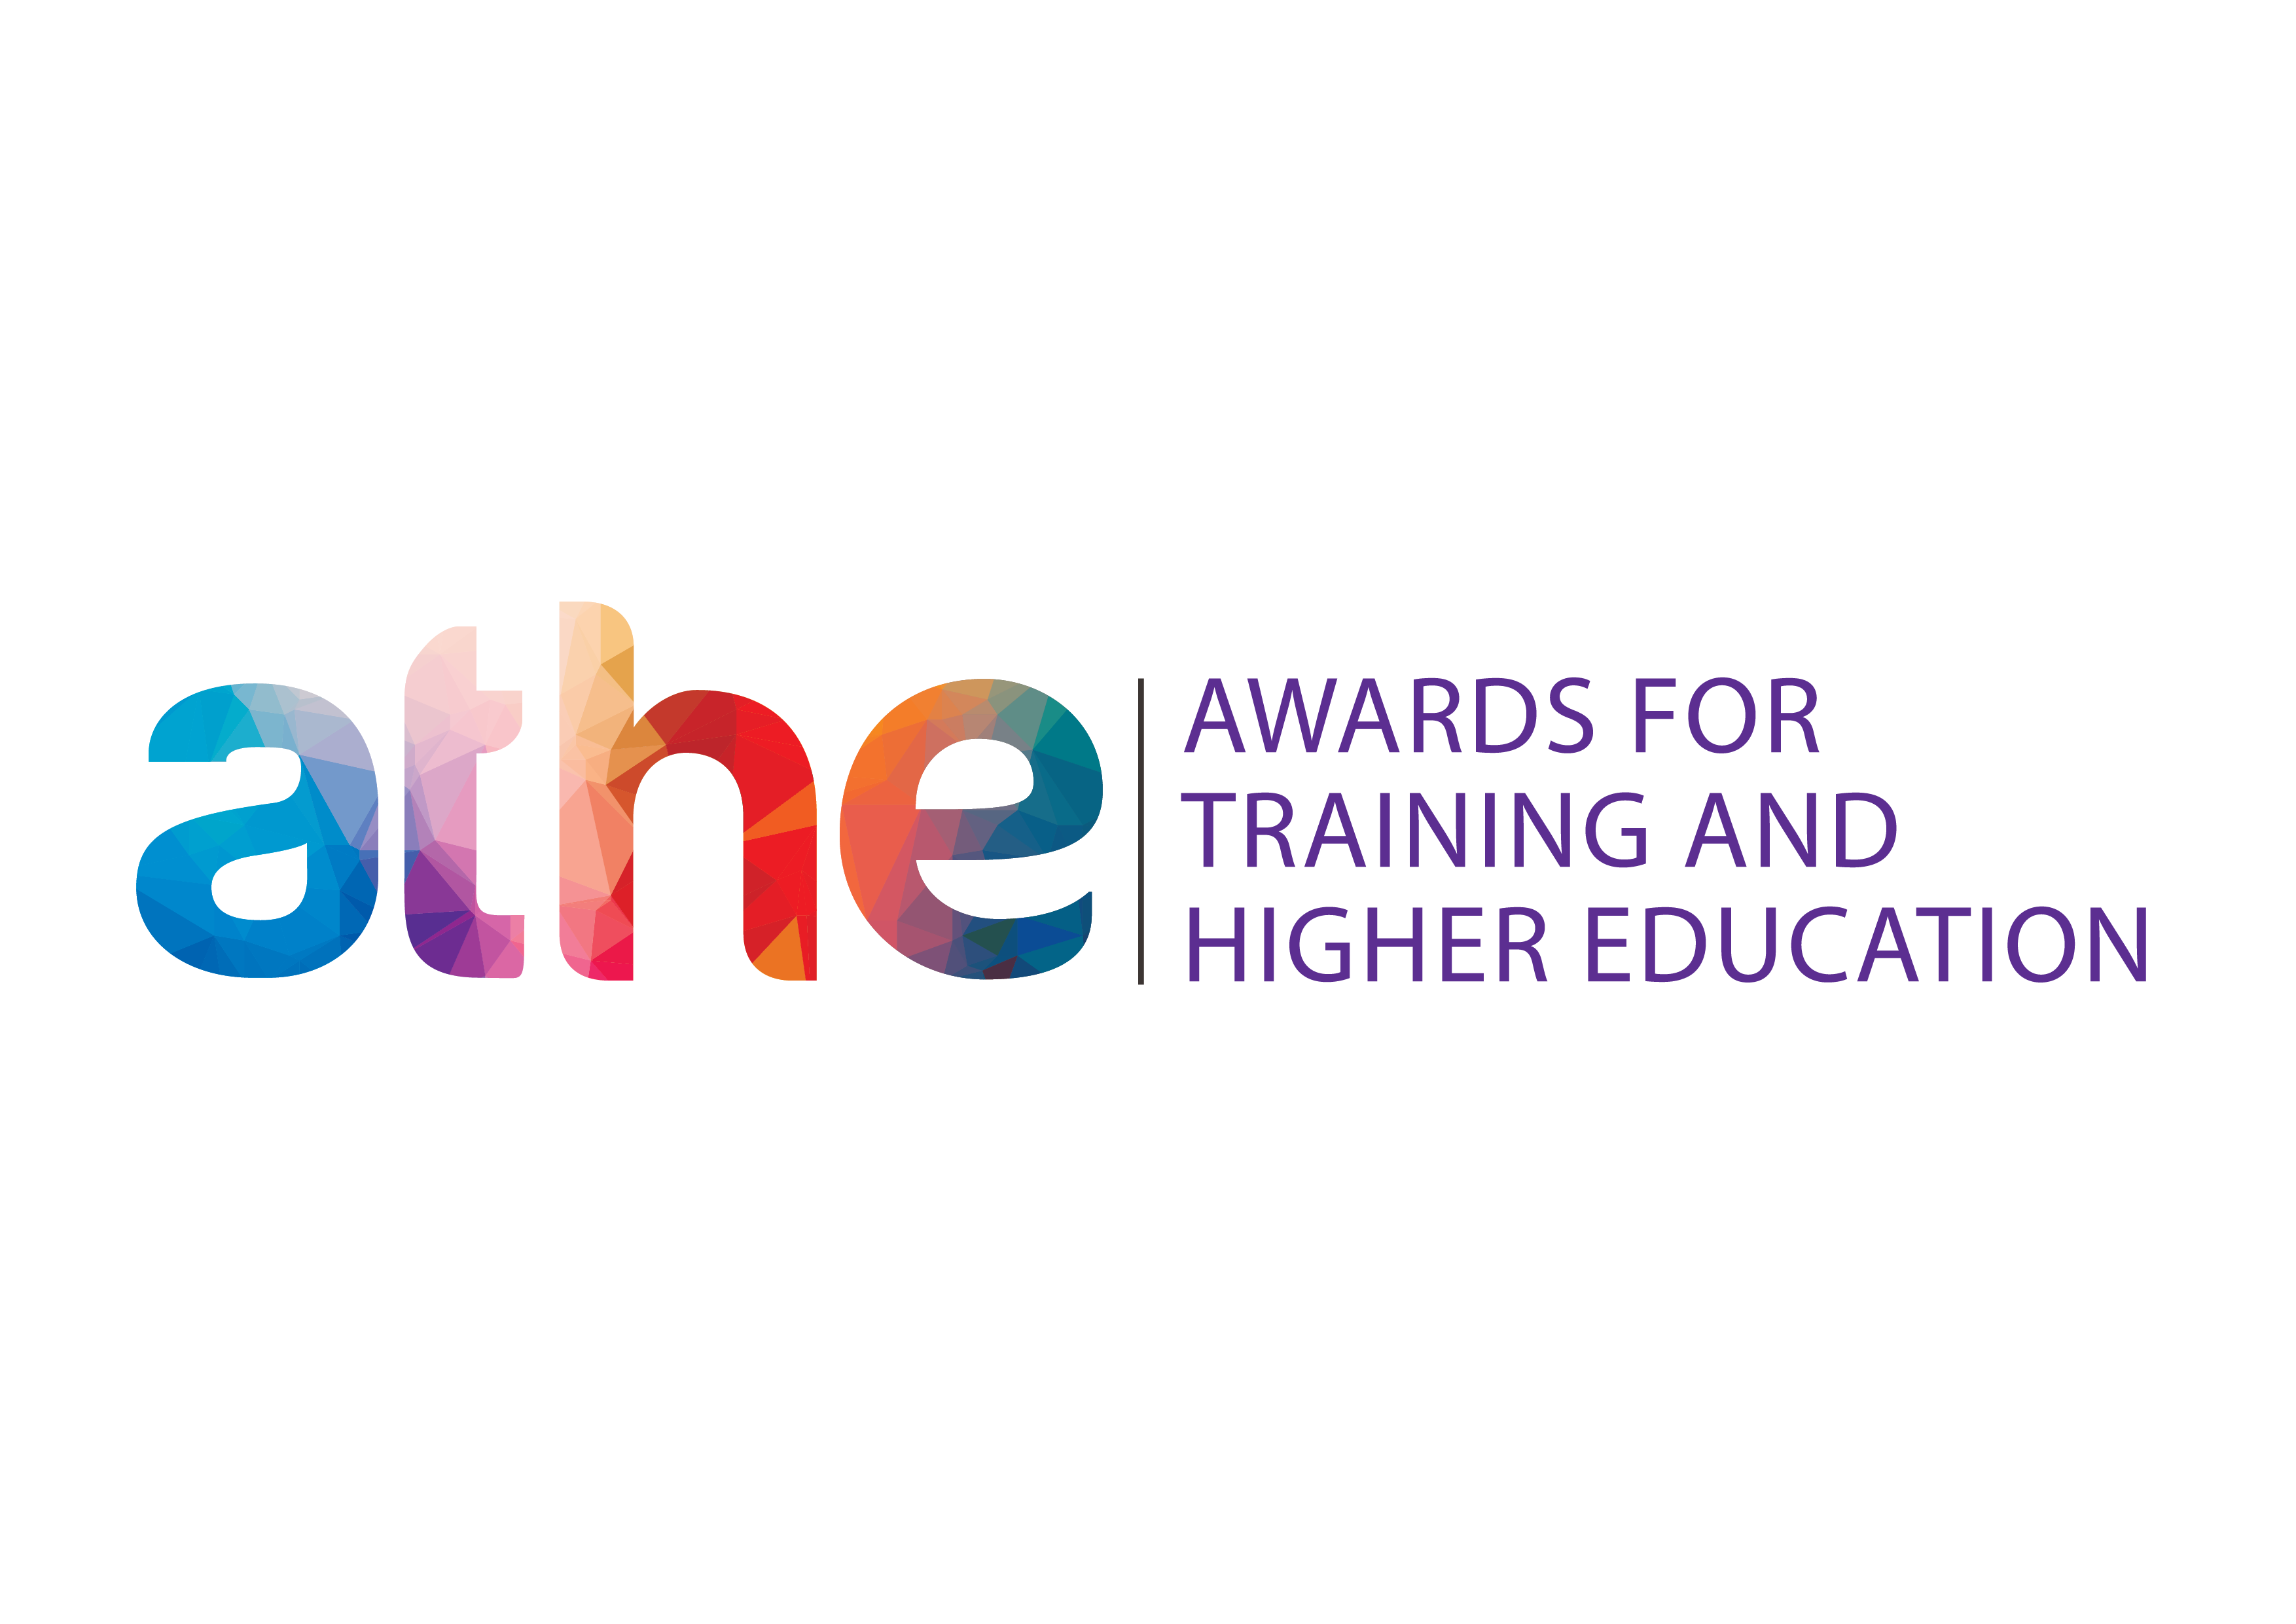 Letters ATHE in multi colours on the left and awards for training and higher education in purple on the right.